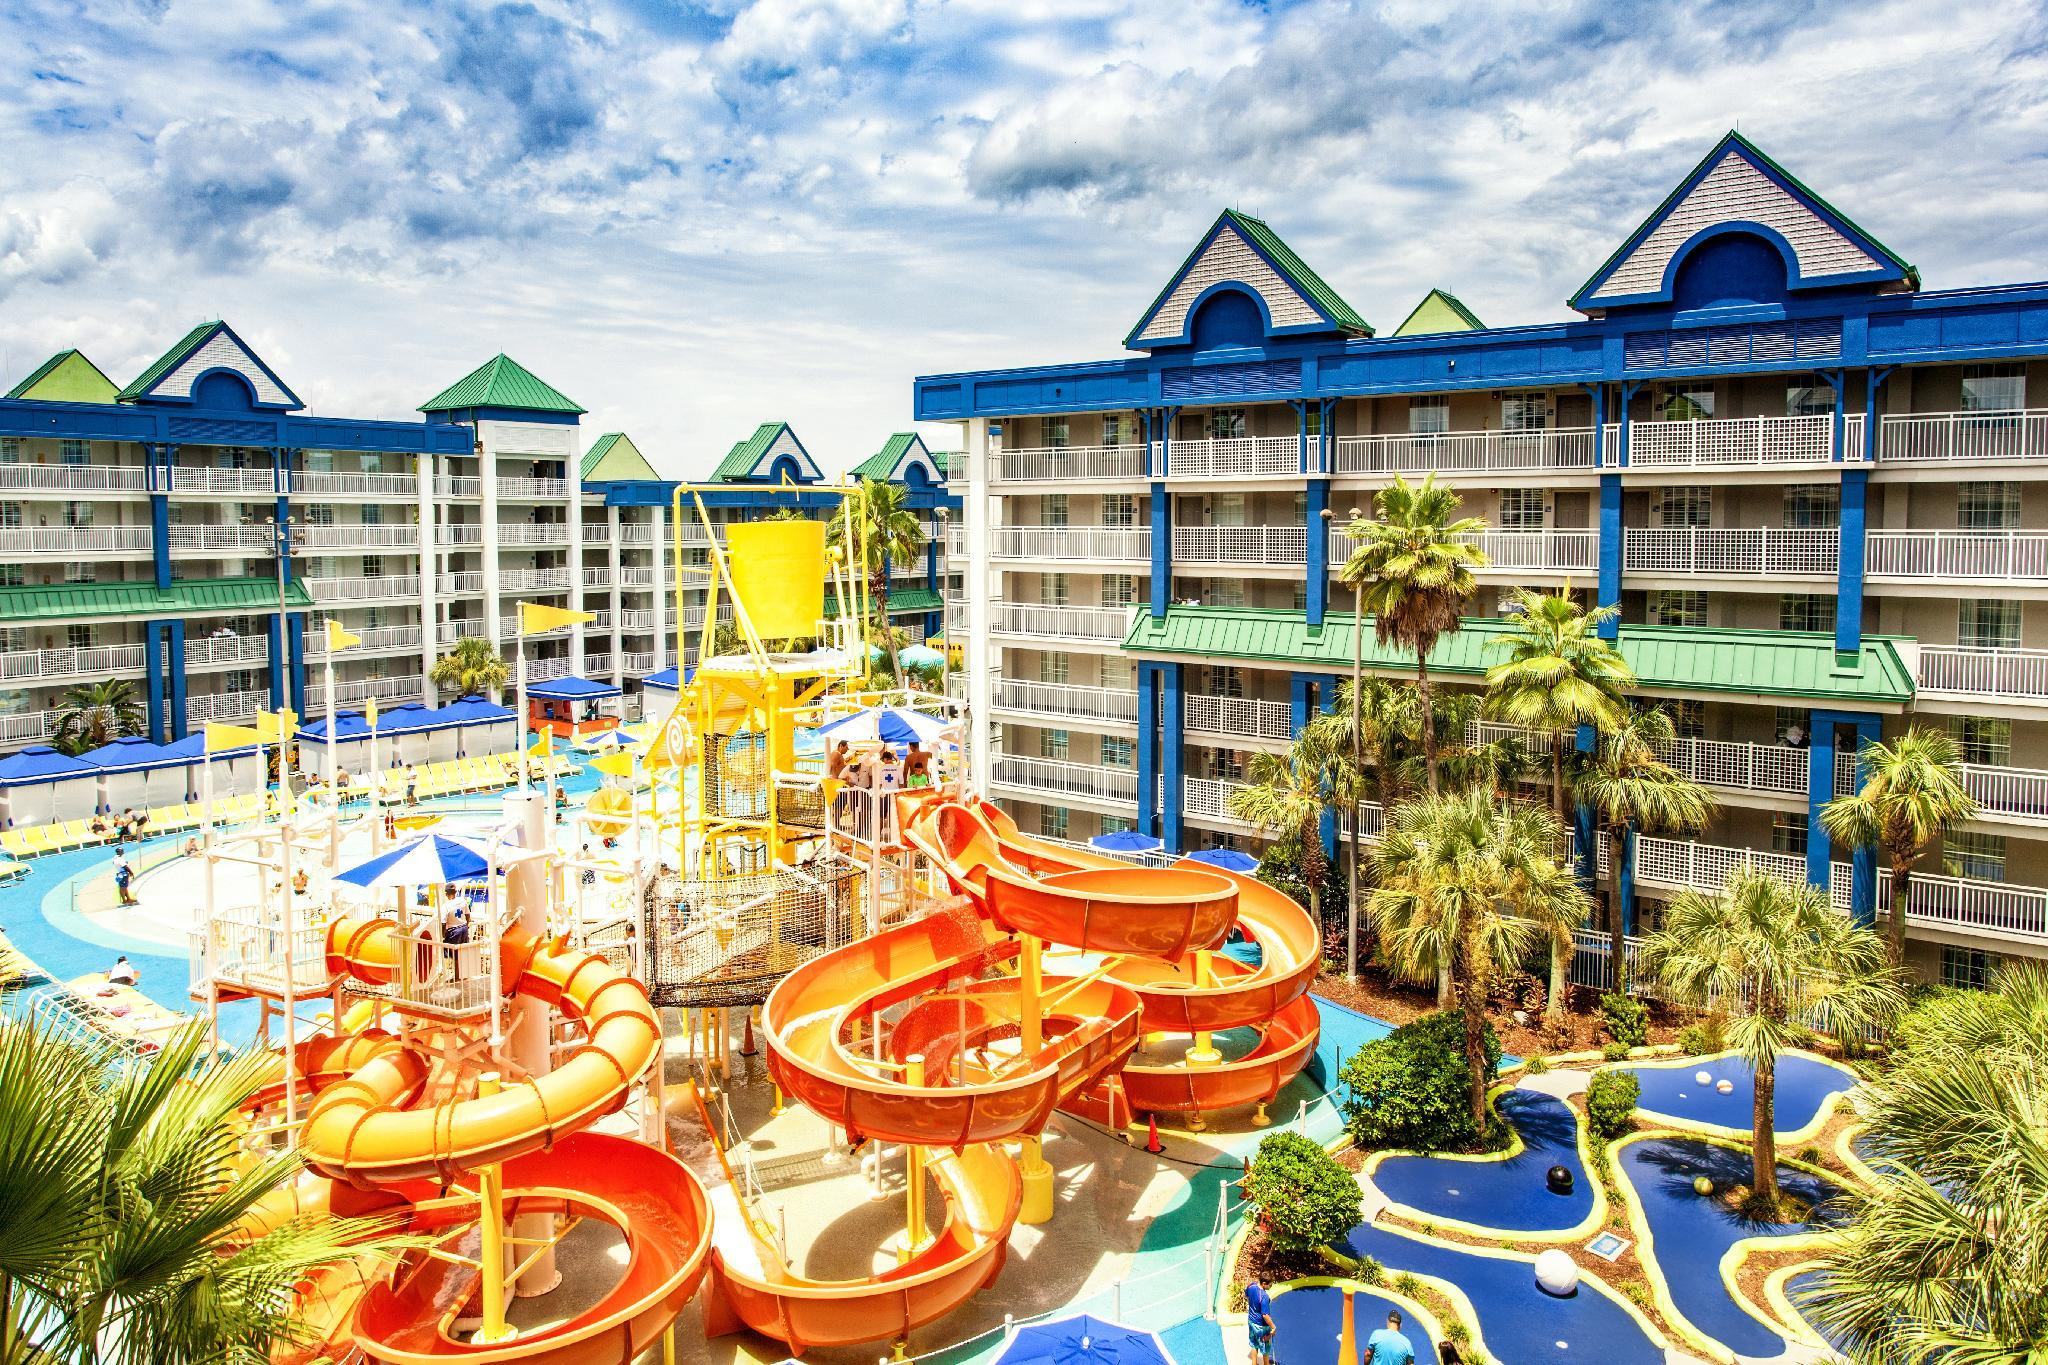 hotels with full kitchens in orlando florida commercial kitchen exhaust hood 奧蘭多 fl 尼克套房度假酒店 holiday inn resort suites waterpark